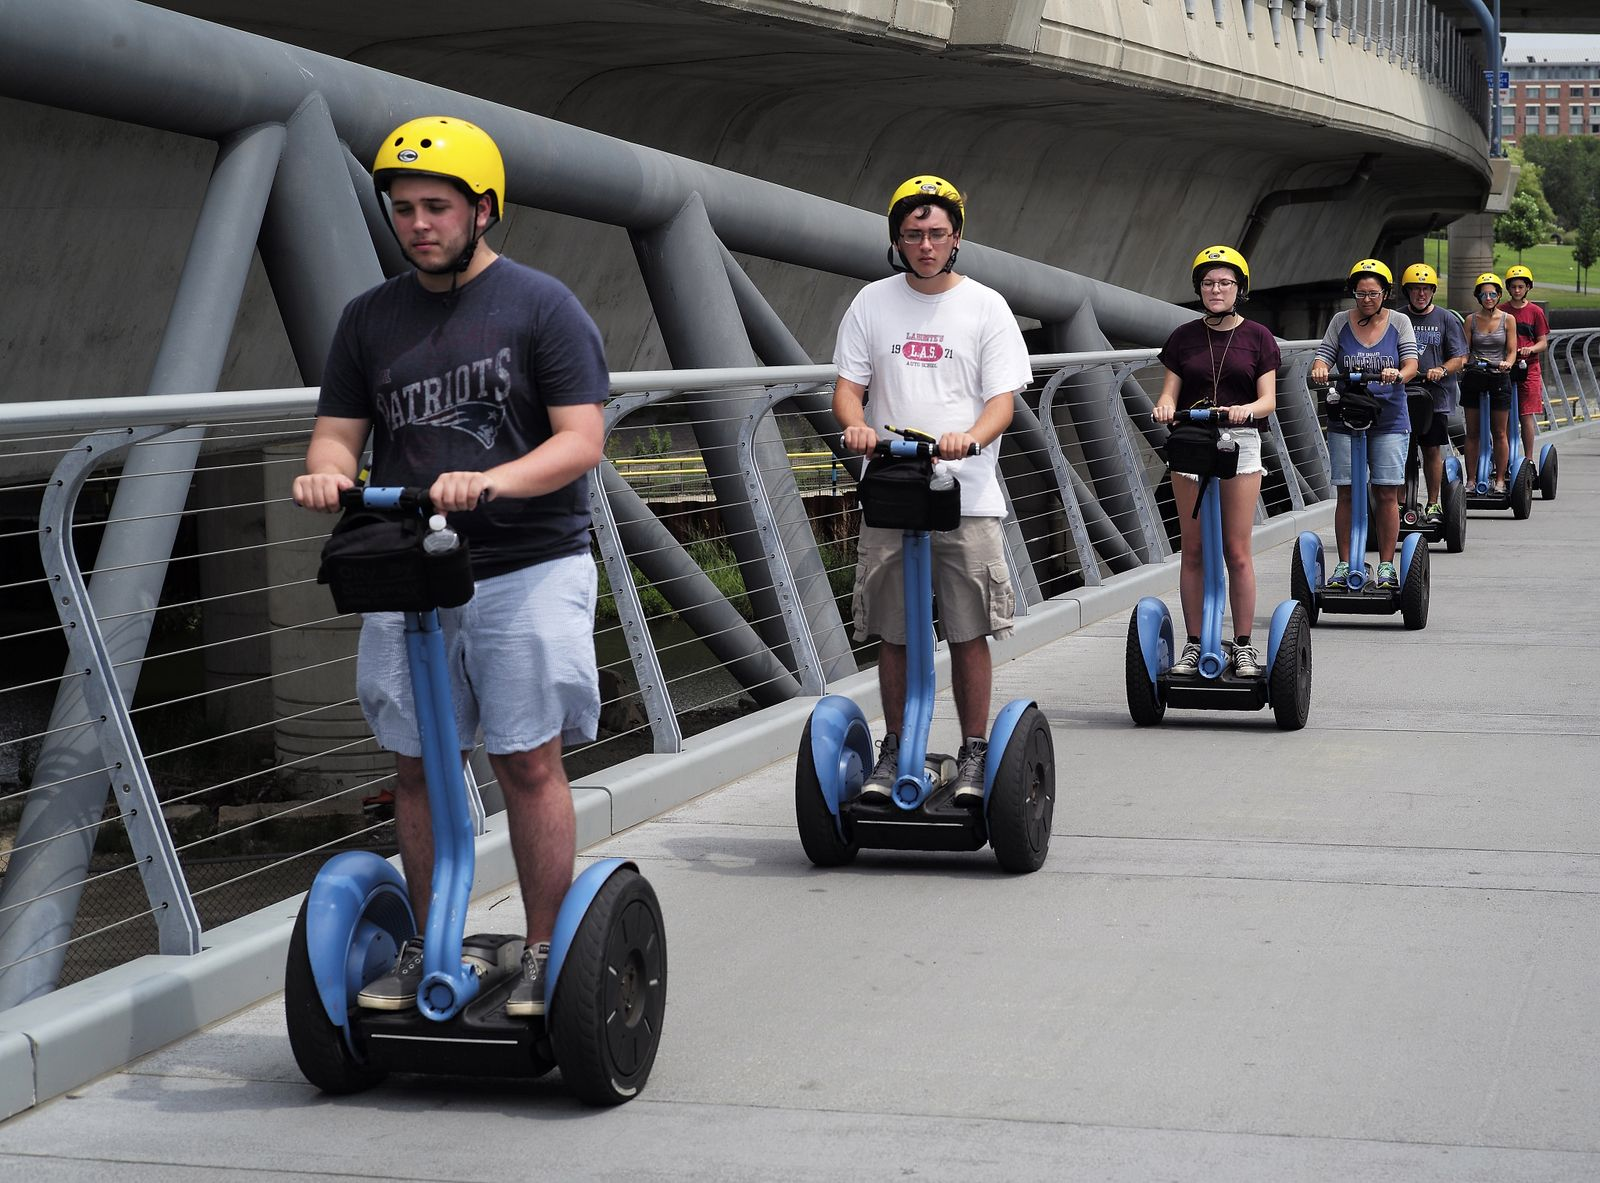 Segway to stop production of PT Model in July 2020, Boston, USA - 30 Jul 2015